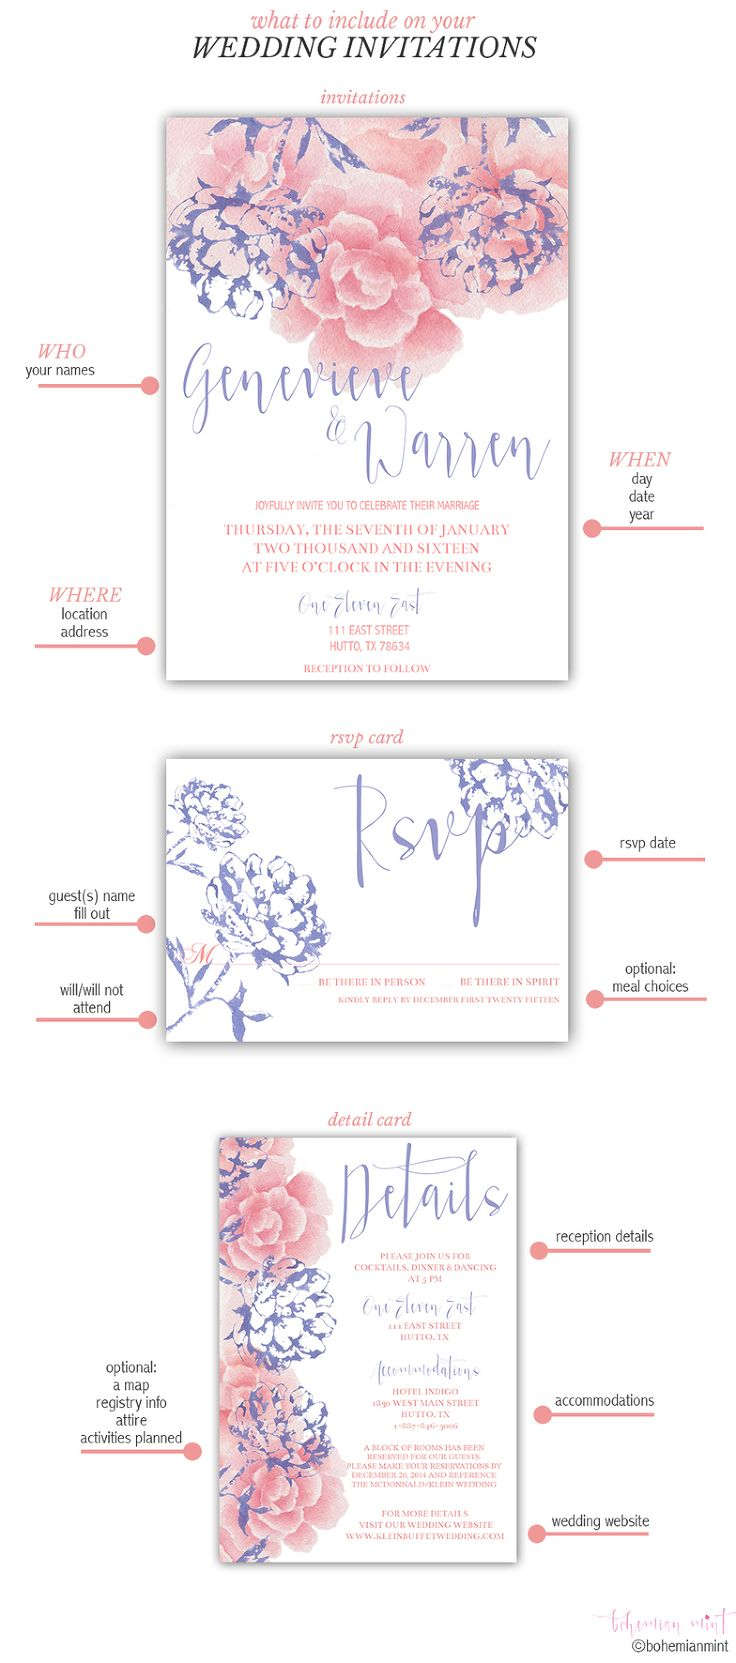 what to include on your wedding invitations-watercolor-invitations by bohemian mint-guide